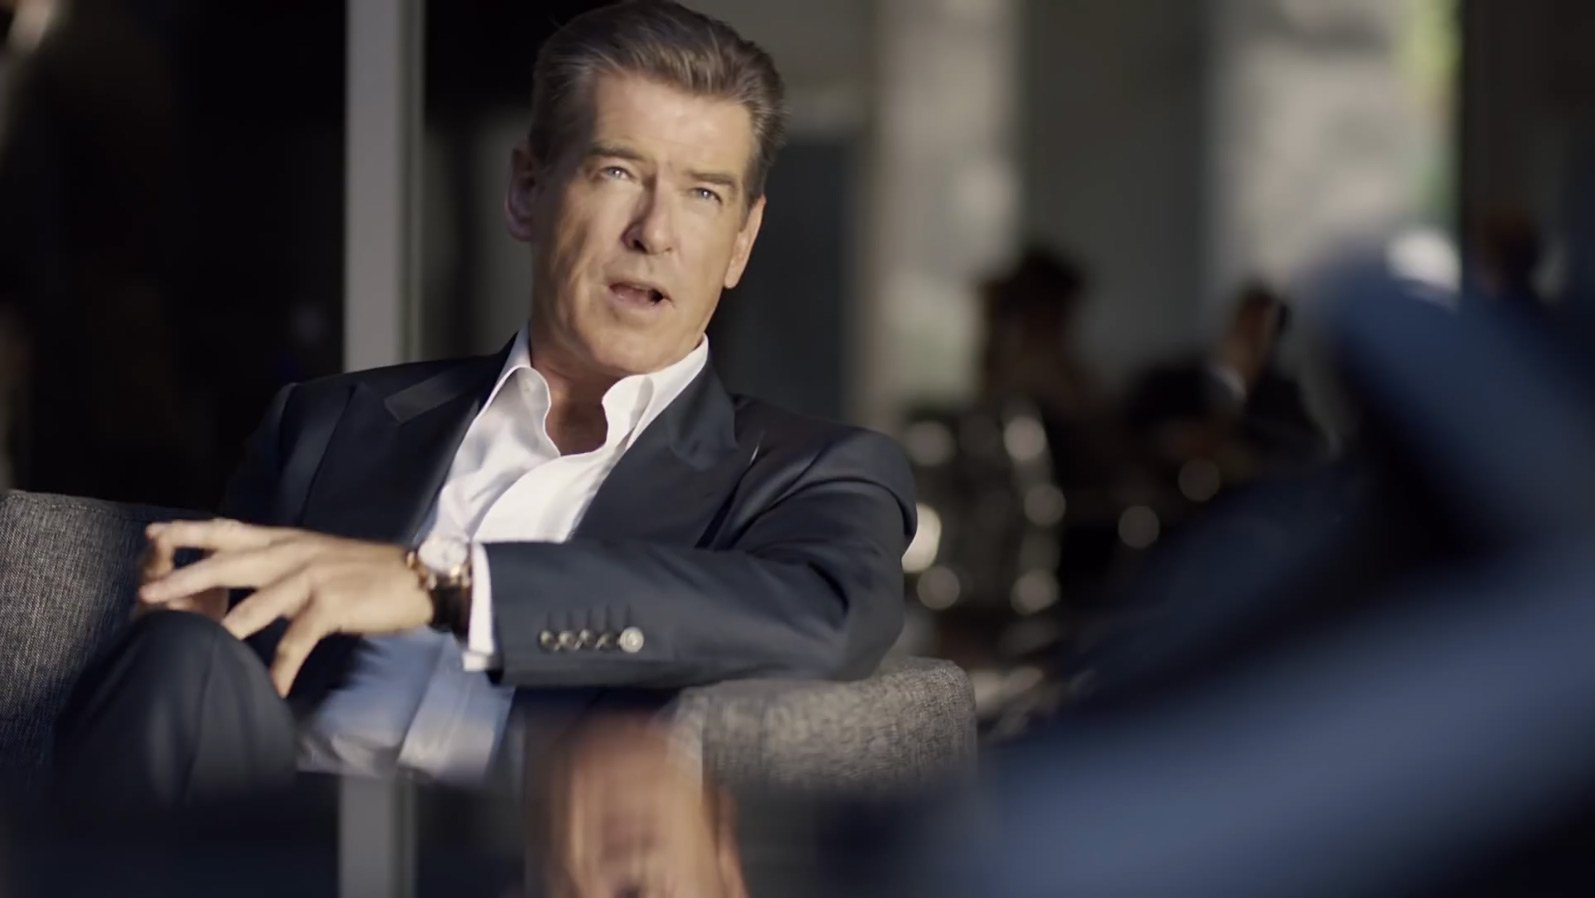 Pierce-Brosnan-Kia-Suit-2